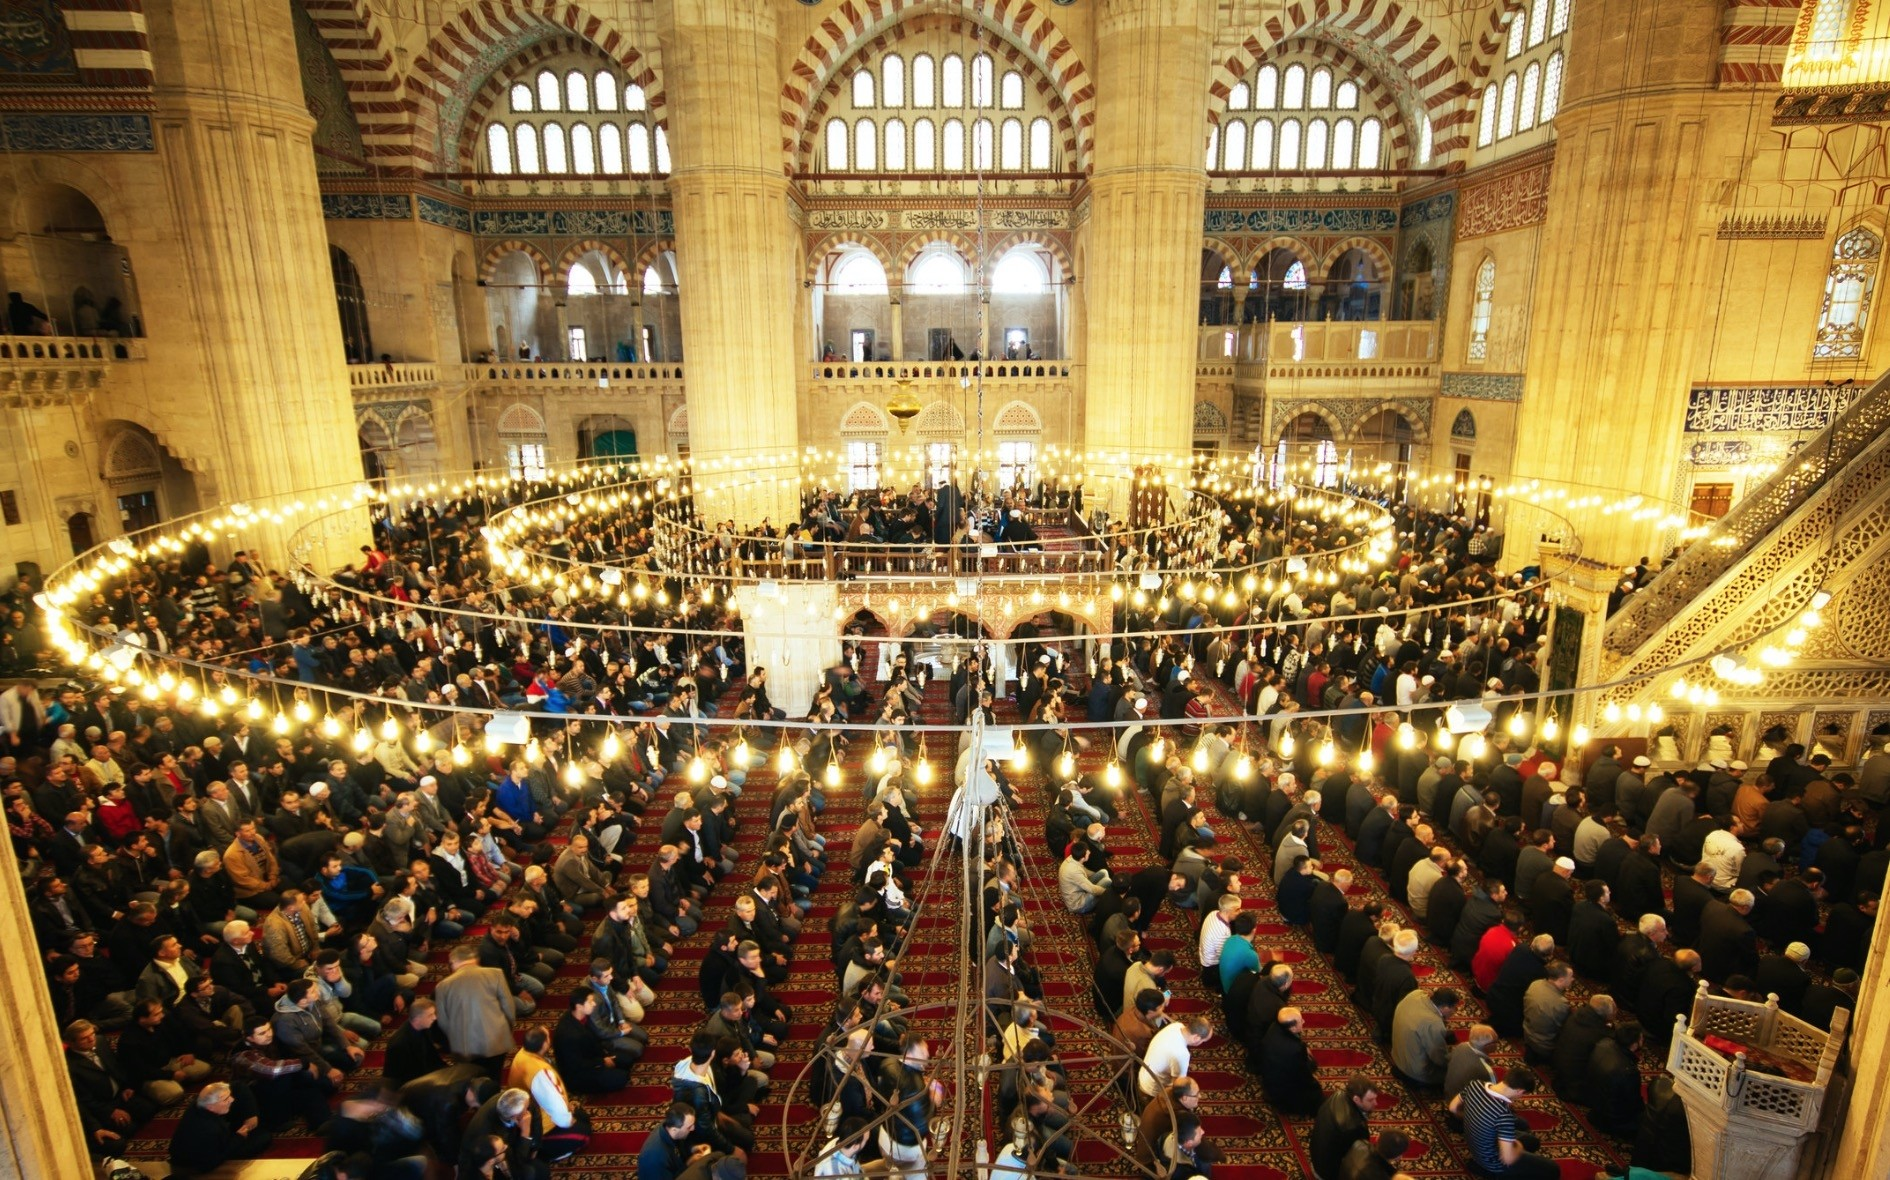 Muslims gather at the Selimiye Mosque in Edirne for eid prayer.